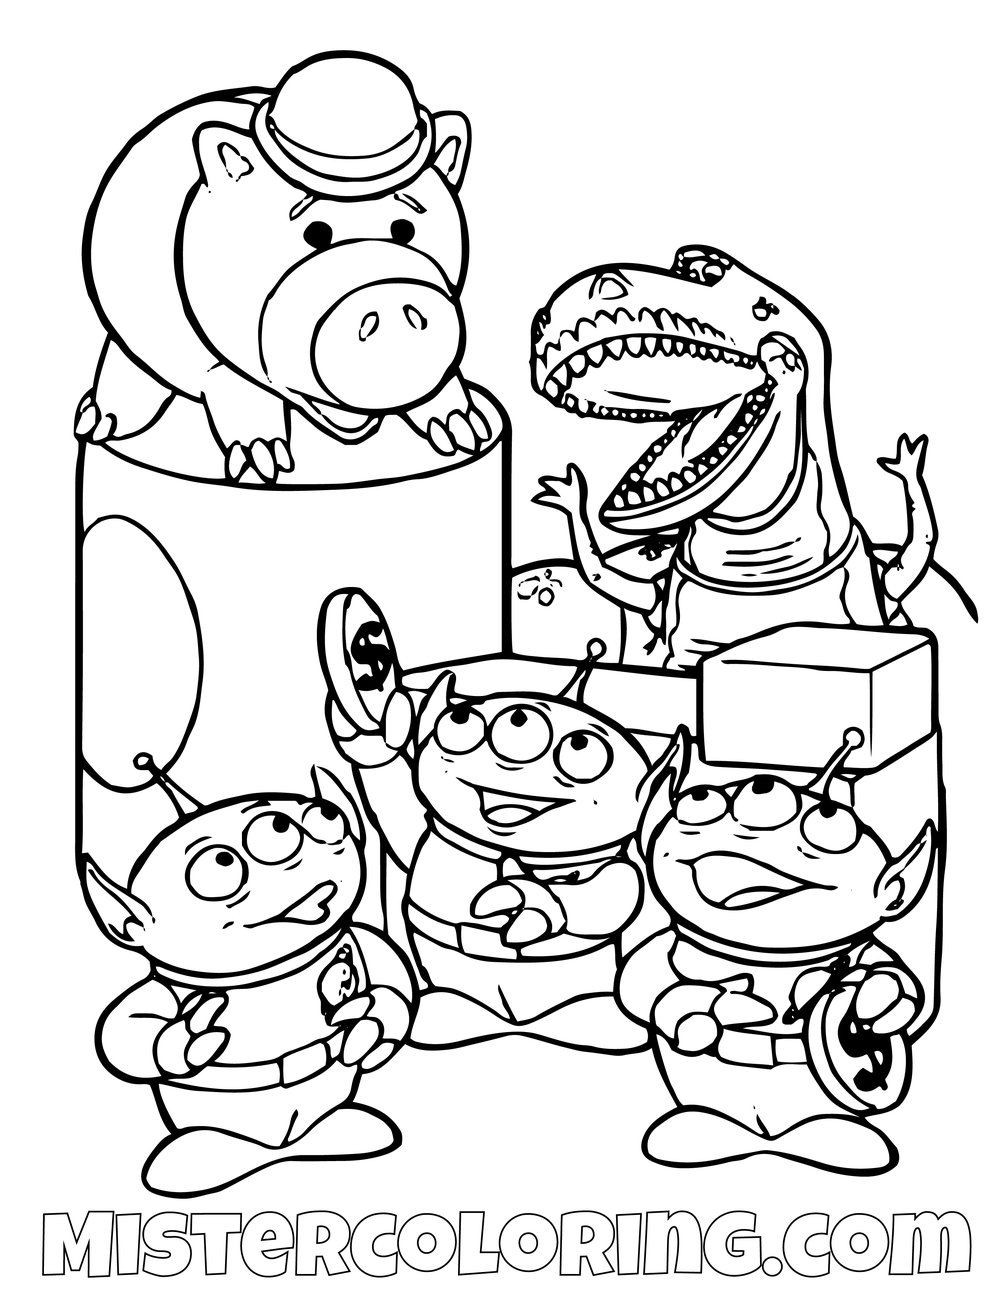 Aliens Rex And Ham Toy Story Coloring Page